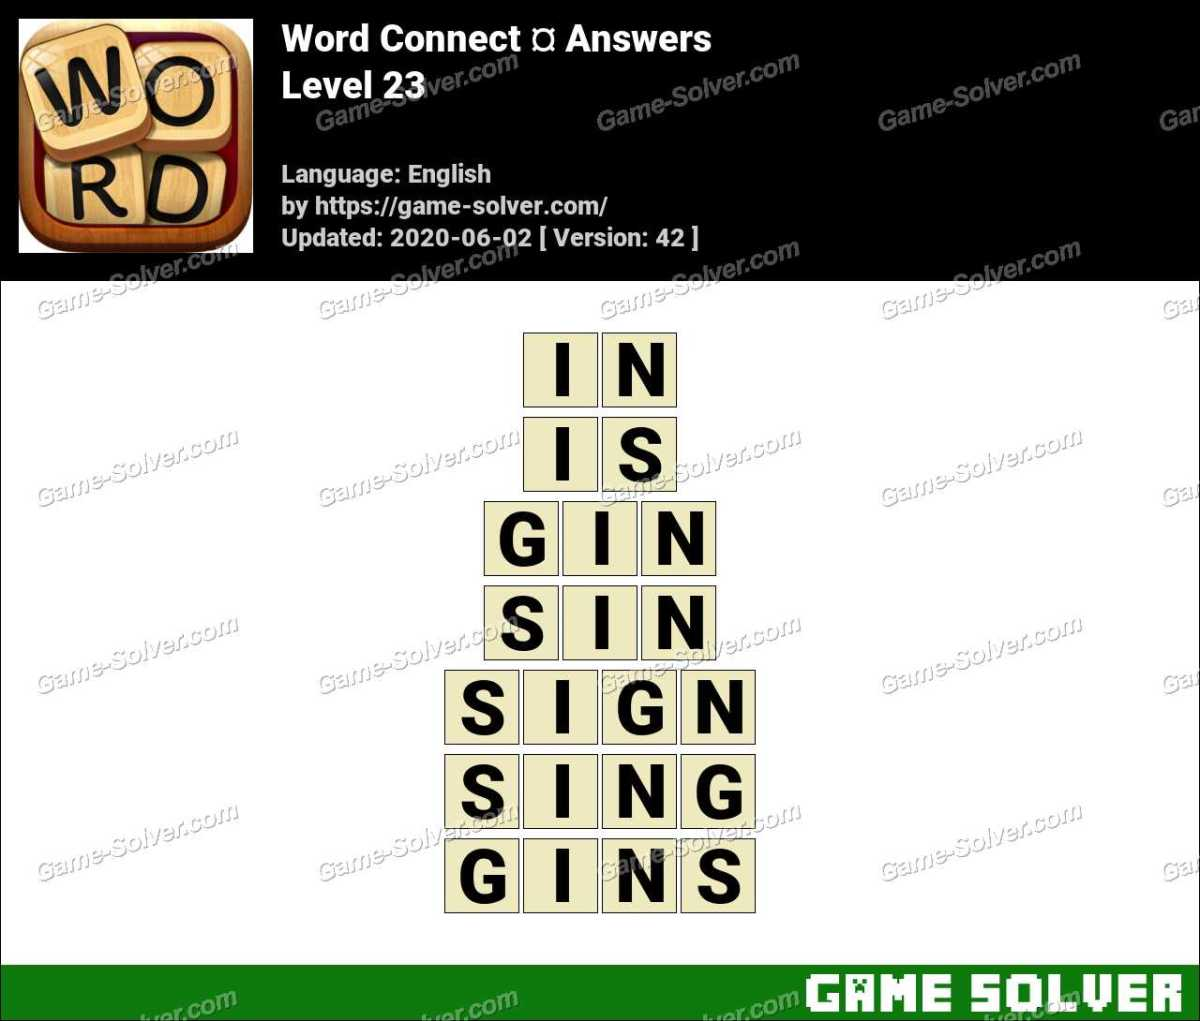 Word Connect Level 23 Answers